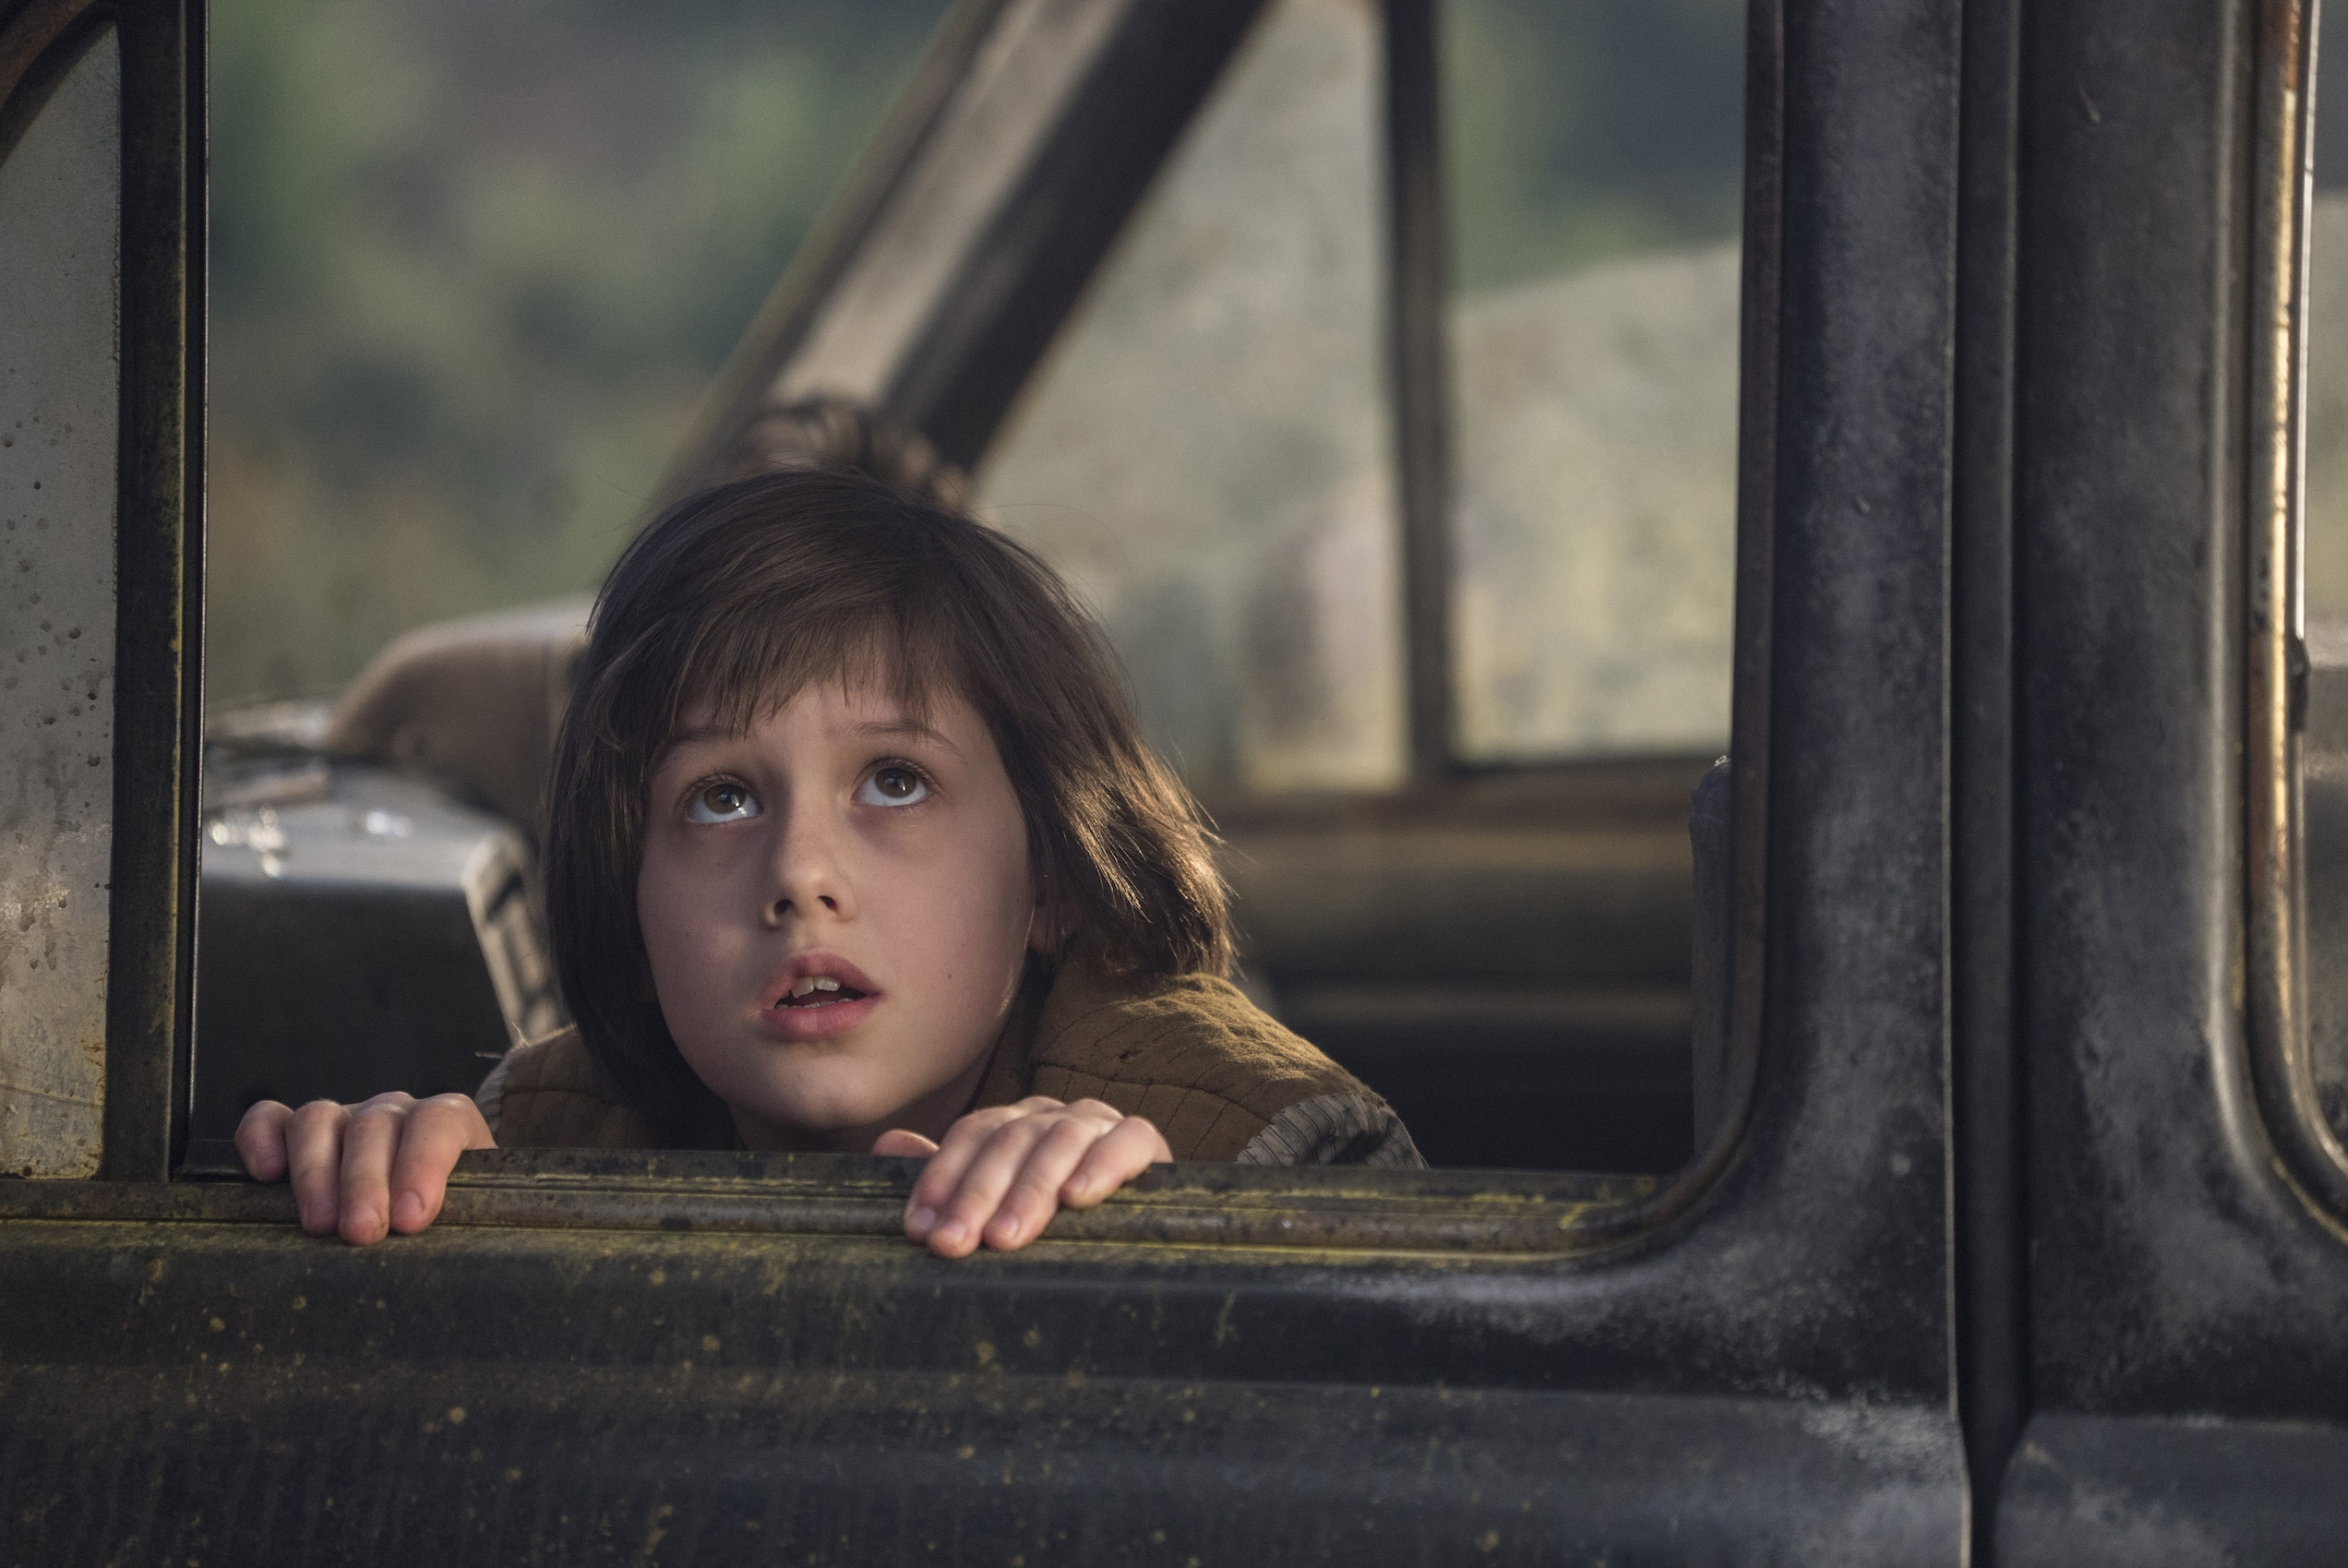 """Sophie (played by Ruby Barnhill) looking out a car window in the movie """"The BFG"""""""